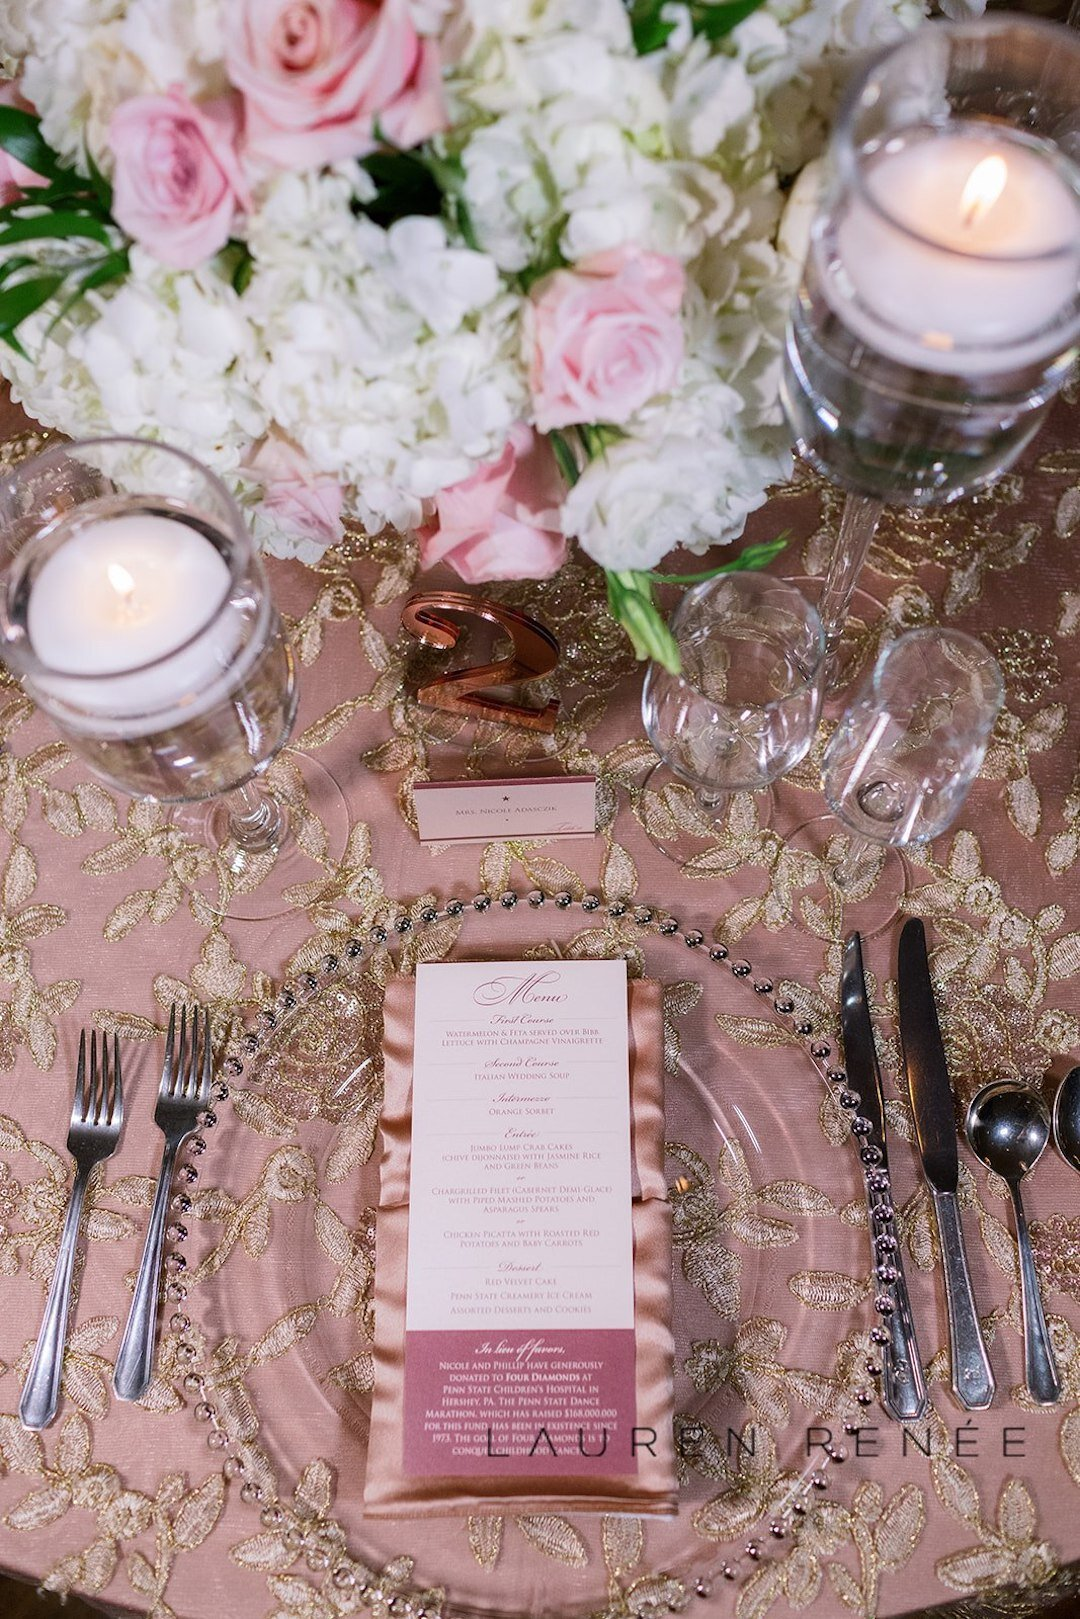 Blush wedding place setting: Romantic Blush Wedding at the Pittsburgh Field Club planned by Exhale Events. See more at exhale-events.com!